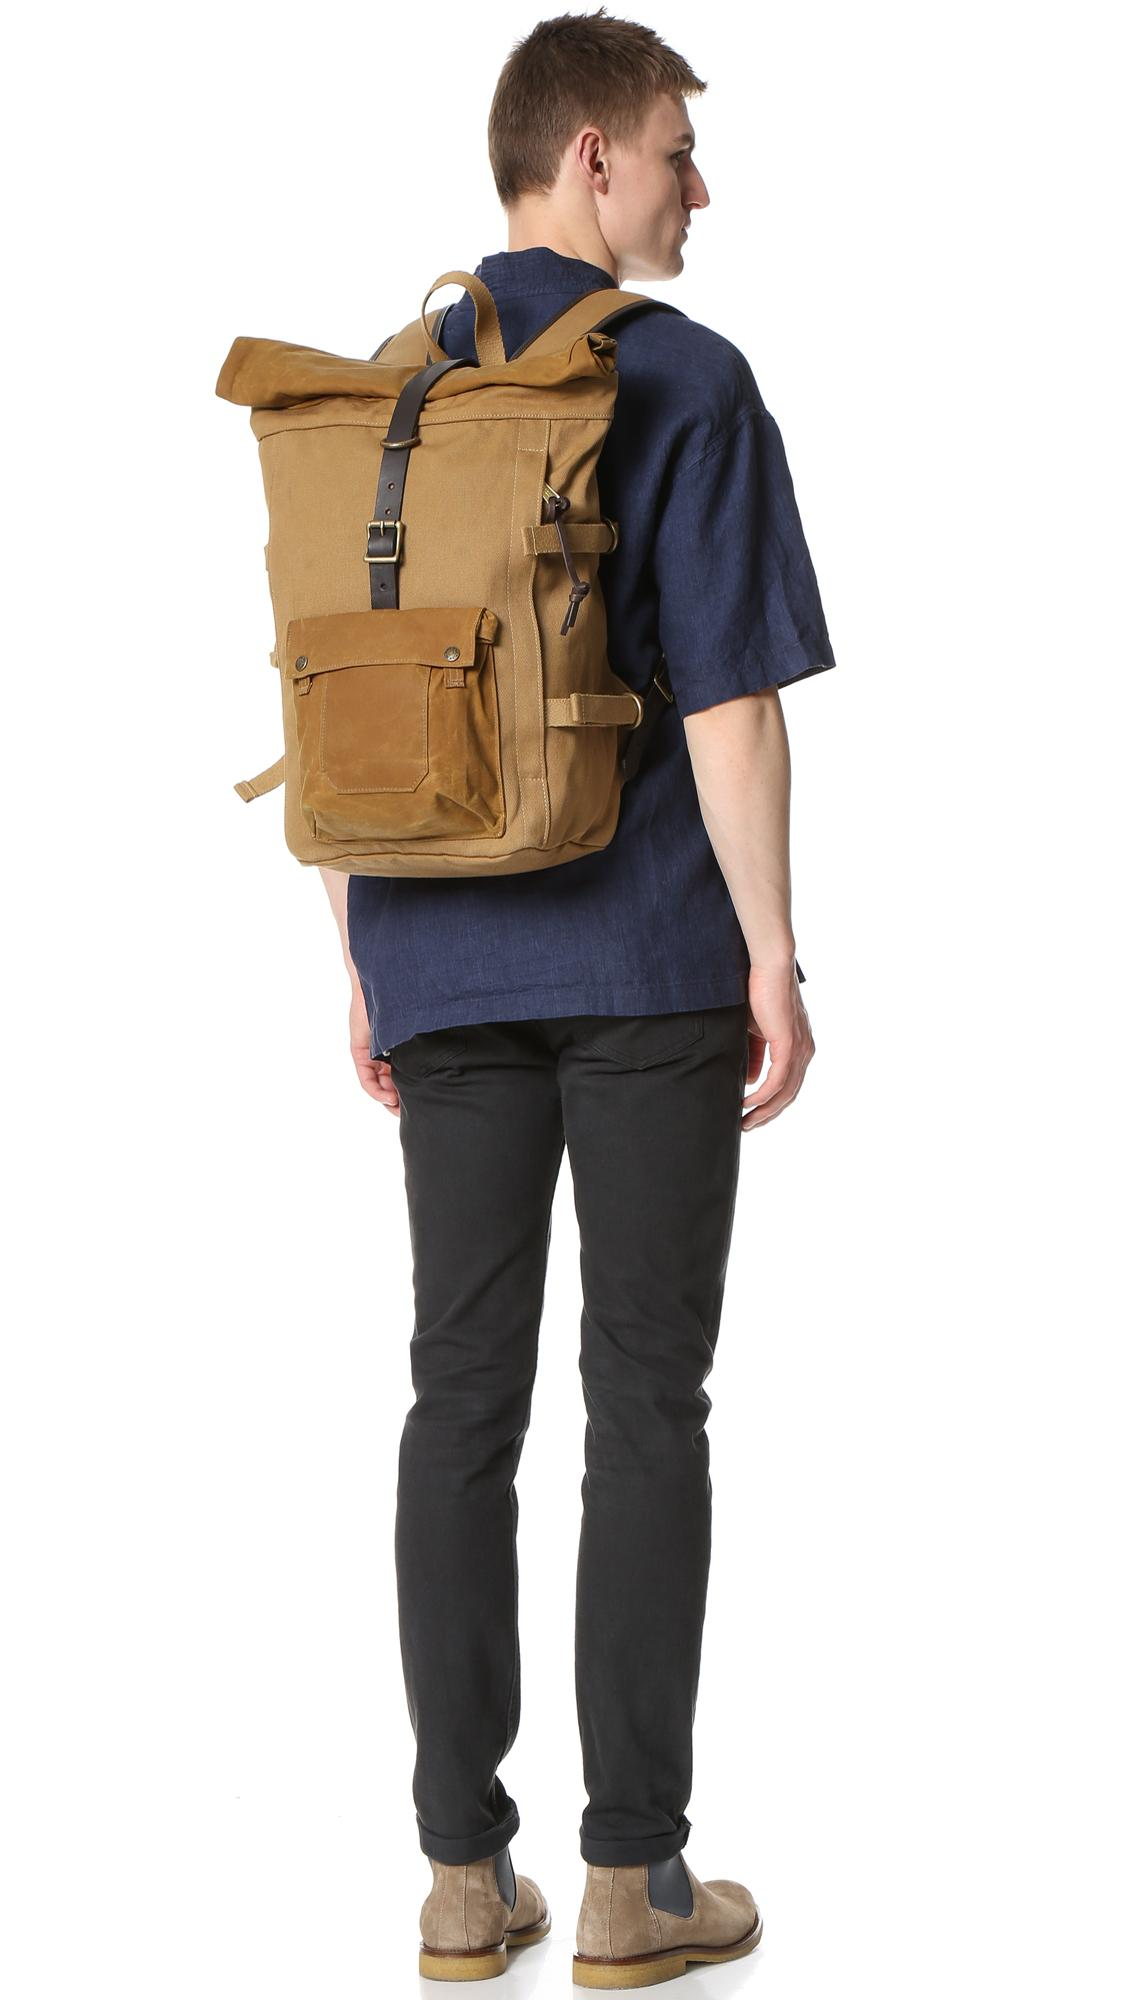 Filson Canvas Roll Top Backpack in Tan (Brown) for Men